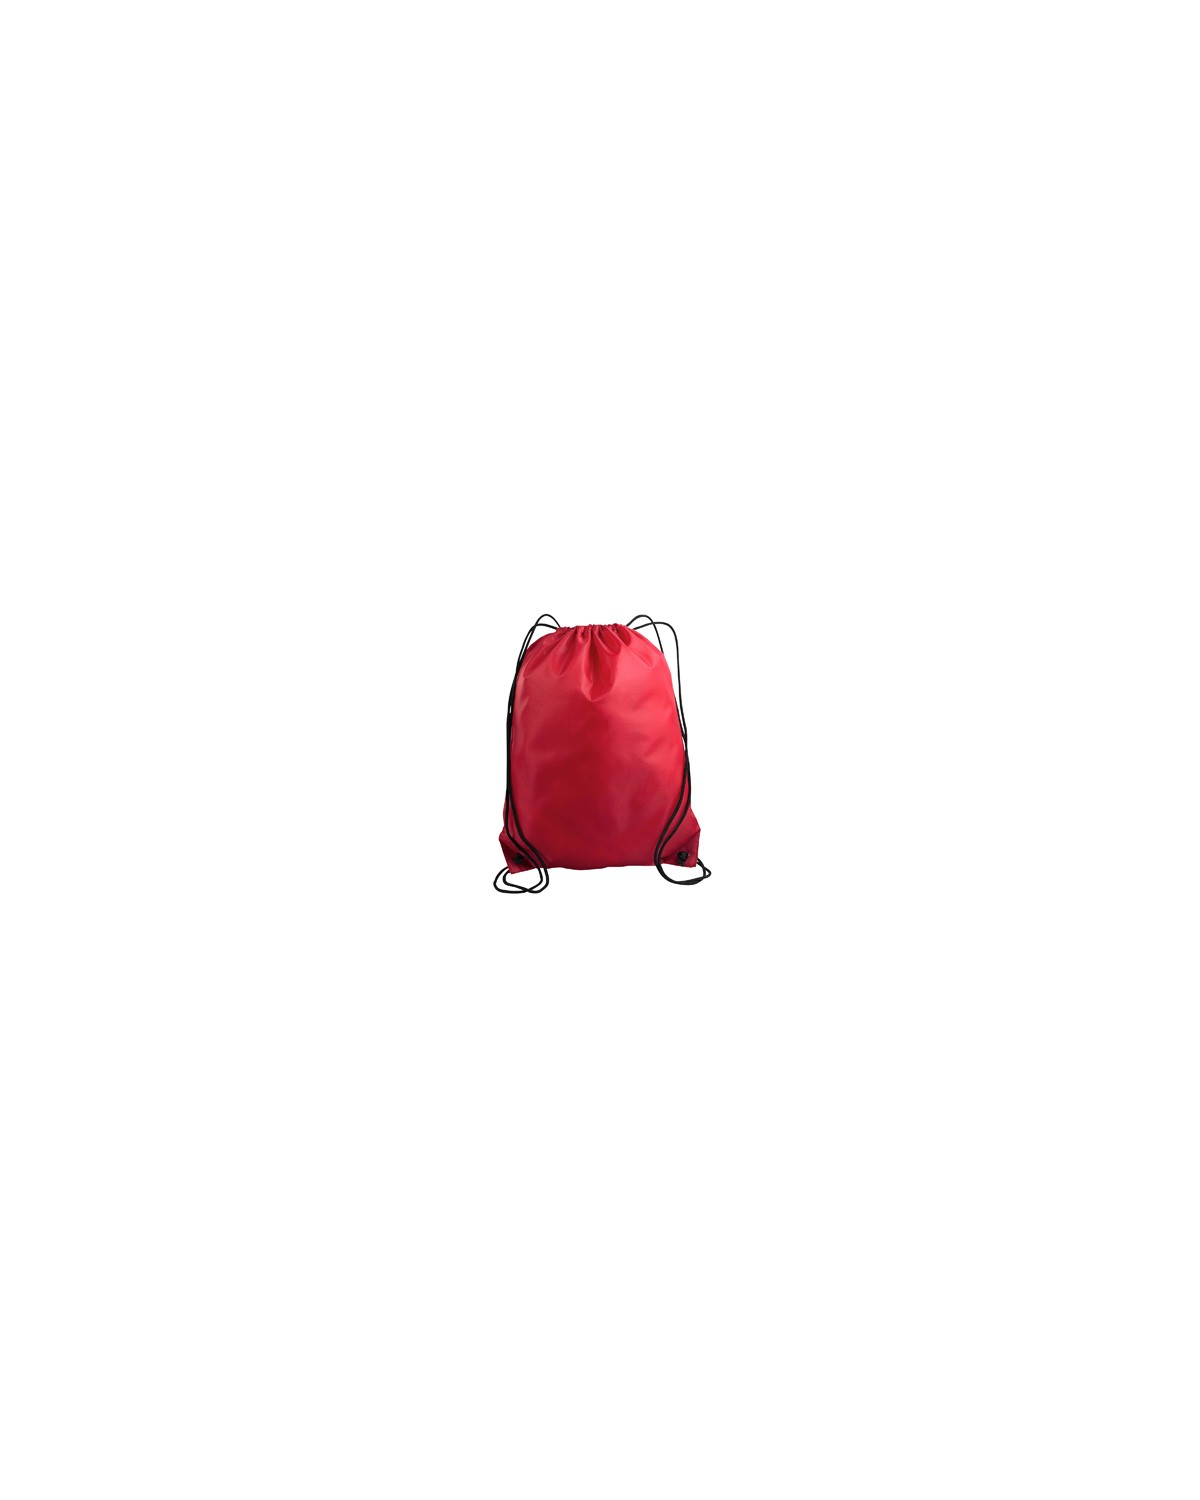 8886 Liberty Bags RED